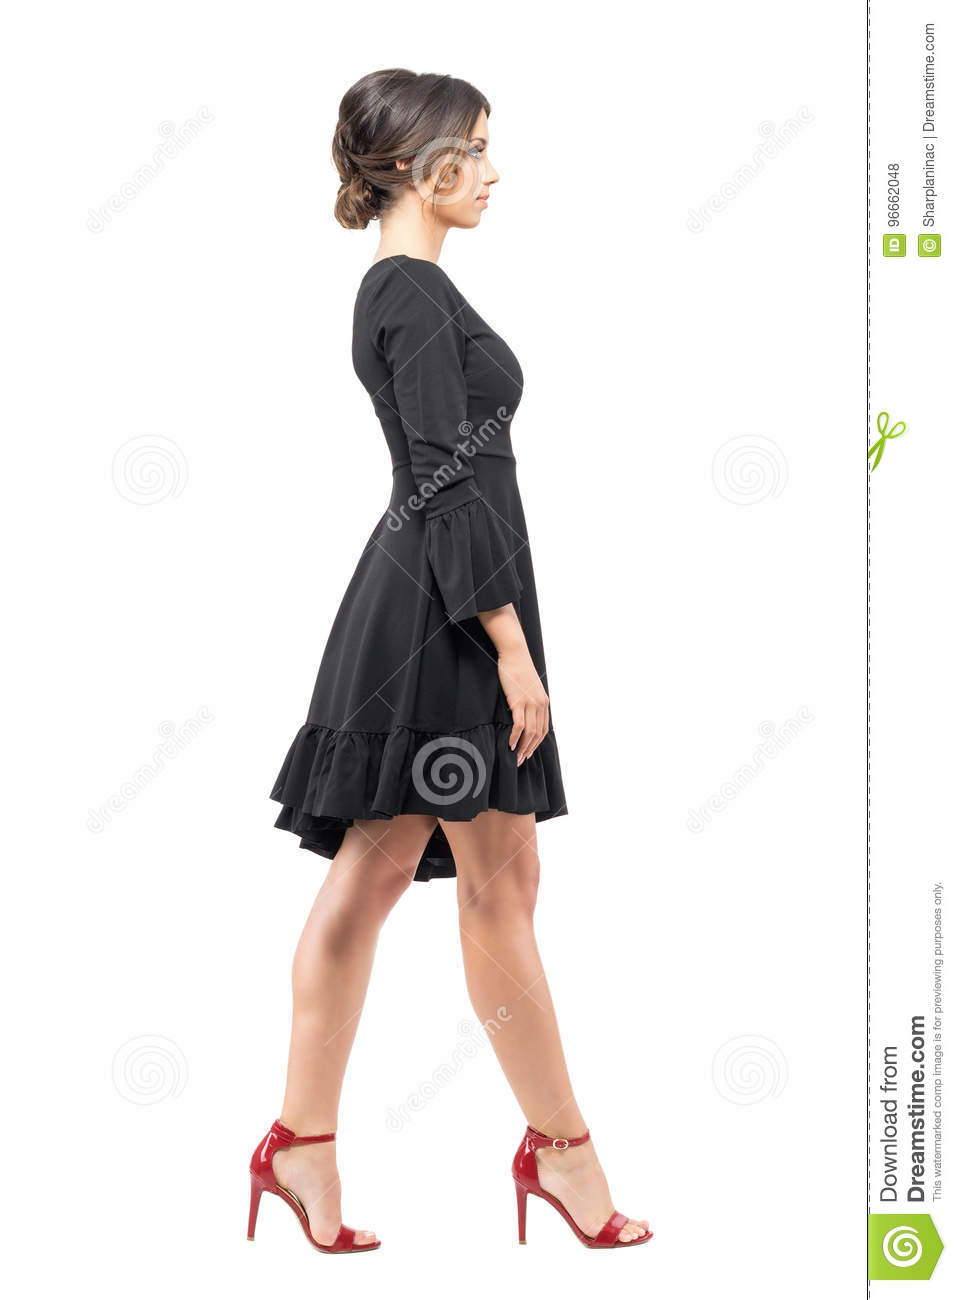 Hispanic woman in black dress and red high heels sandals walking looking ahead side view